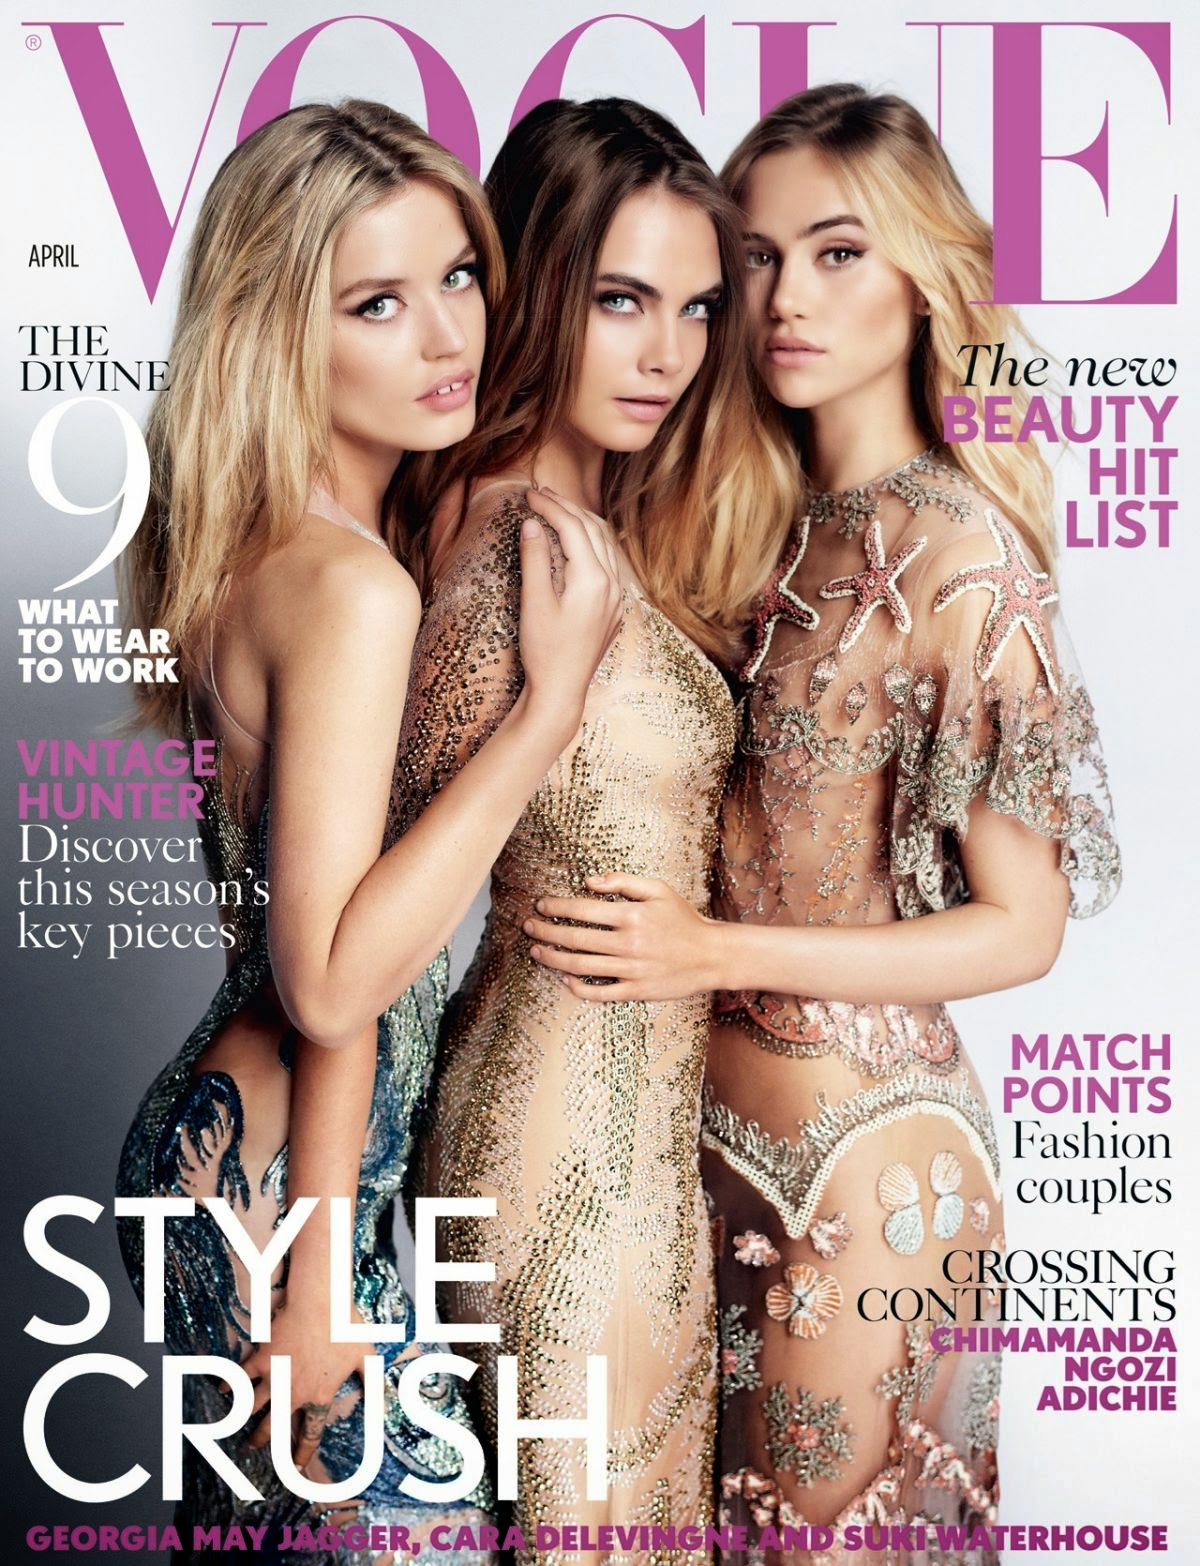 Actress, Model @ Suki Waterhouse, Cara Delevingne And Georgia May Jagger In Vogue Magazine, April 2015 Issue